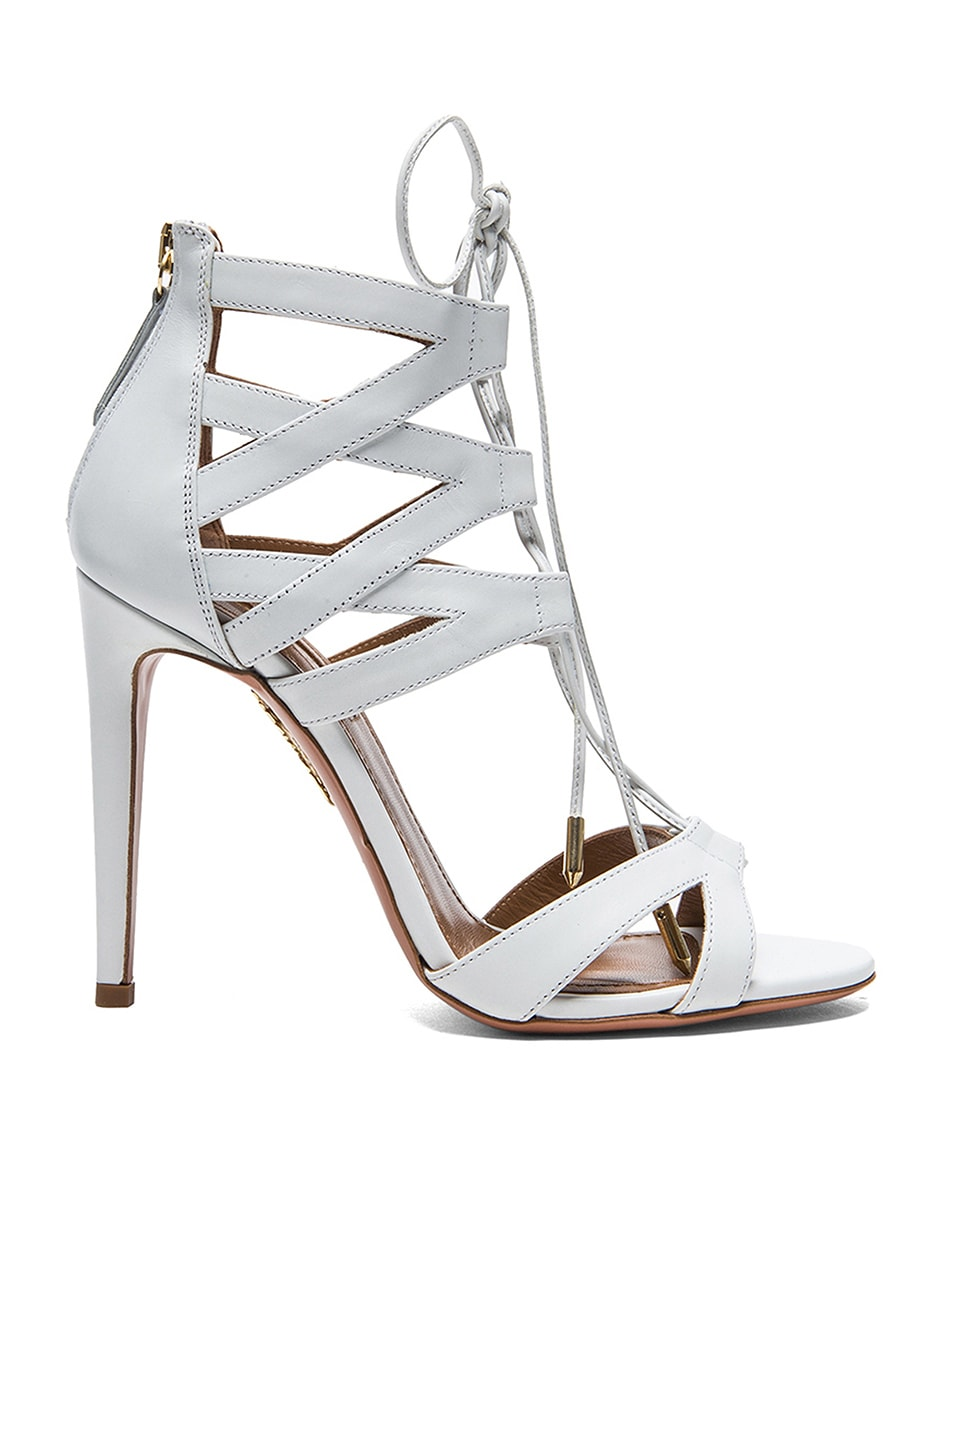 Image 1 of Aquazzura Beverly Hills Calfskin Leather Sandals in White